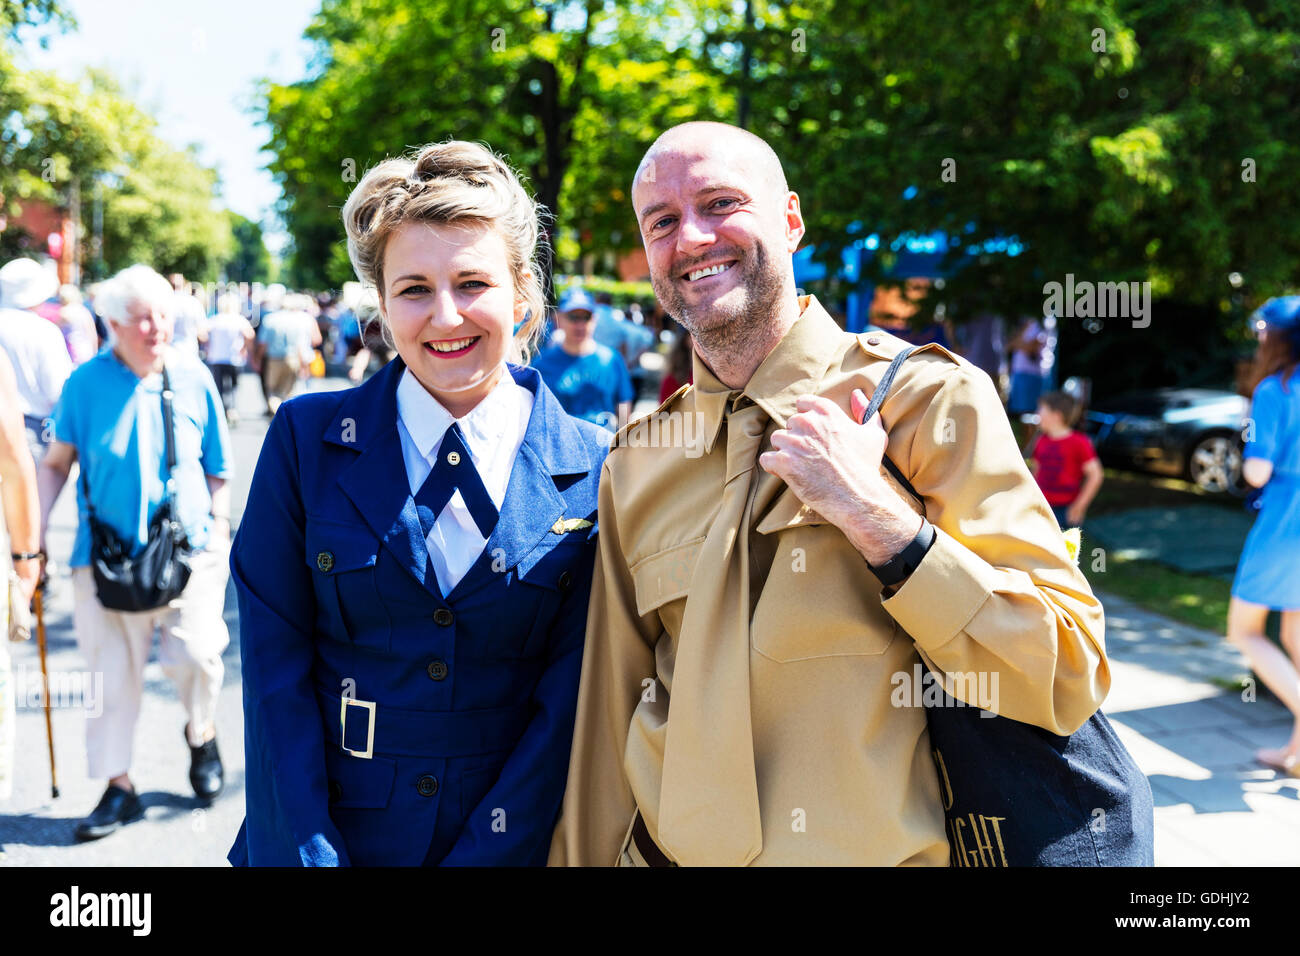 US air force woman army man sweethearts uniforms 1940's Weekend at Woodhall Spa Lincolnshire UK England on 17/07/2016 - Stock Image